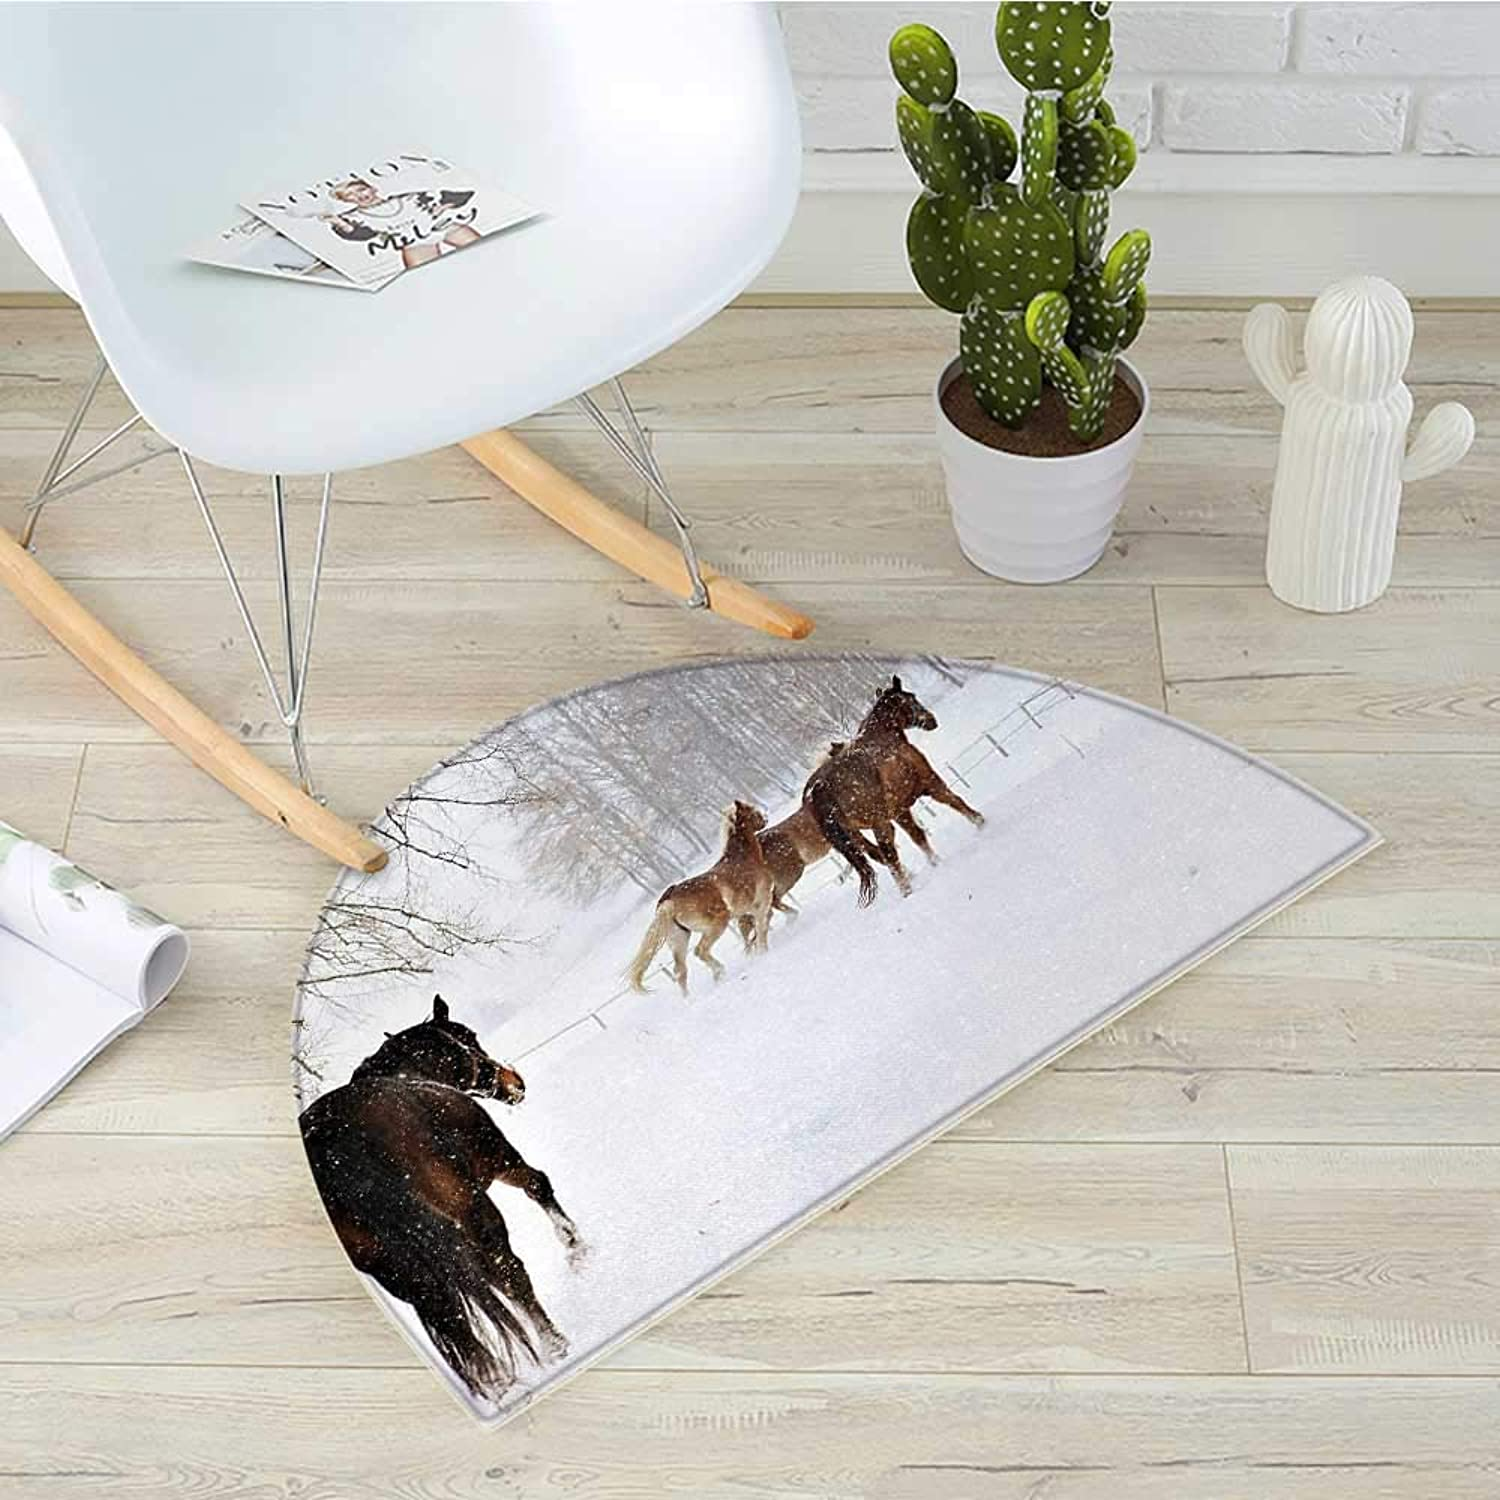 Winter Semicircular CushionHorses in The Snow Playing Having Fun in The Forest Seasonal Animal Photography Entry Door Mat H 39.3  xD 59  Brown White